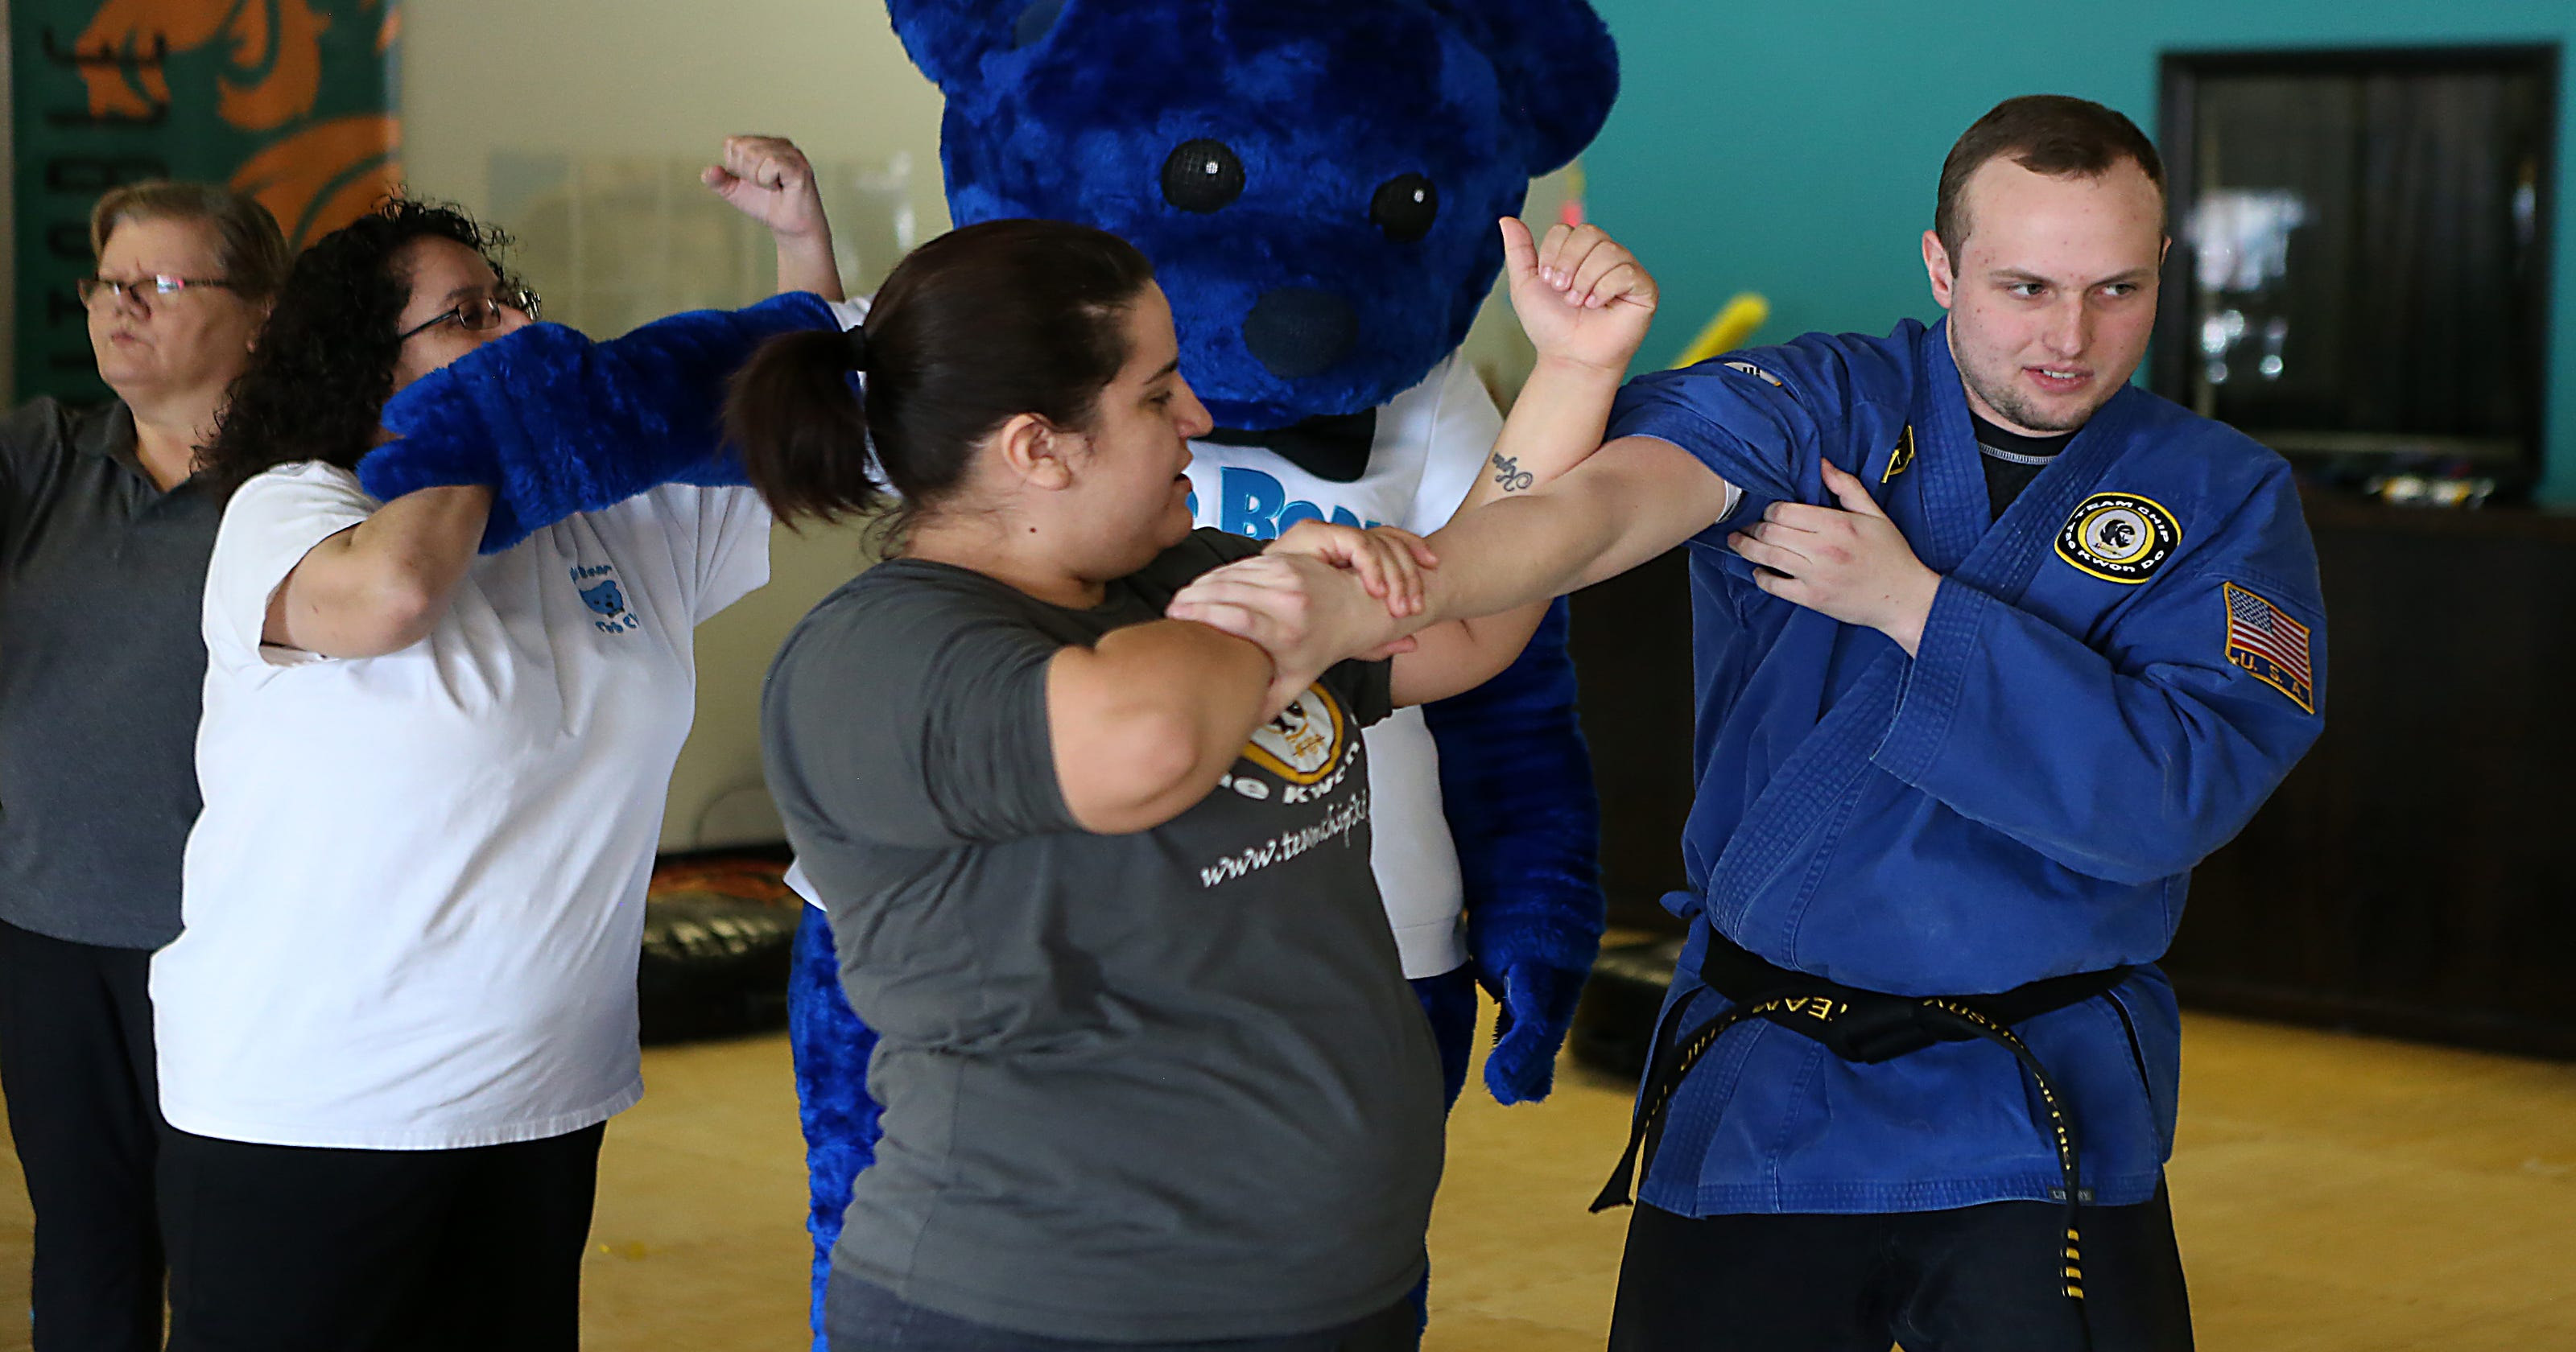 Martial arts school offers free self-defense class for women